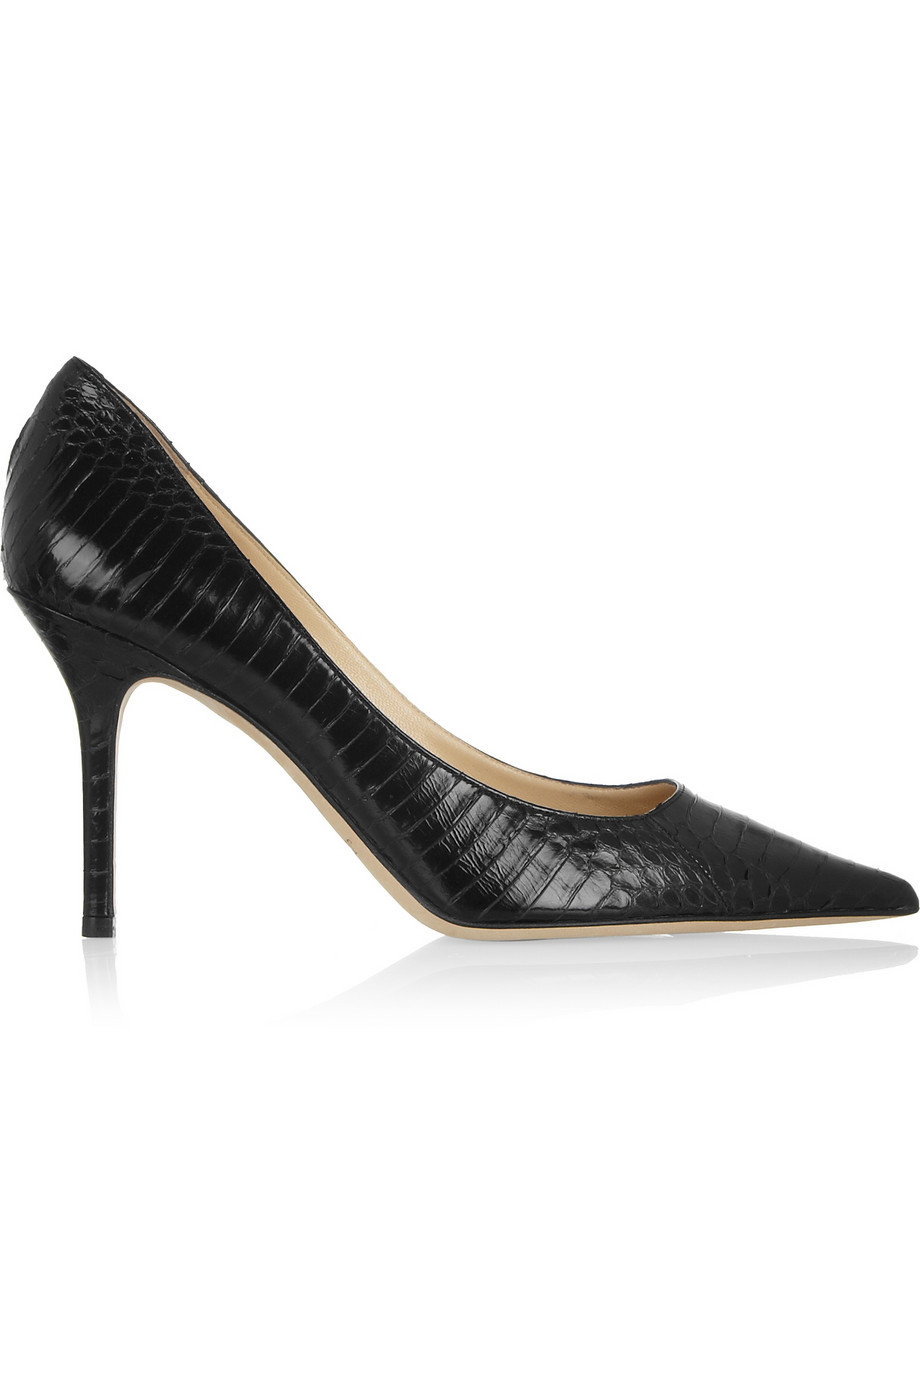 You Complete Me: Nicole Lapin's Perfect Pumps